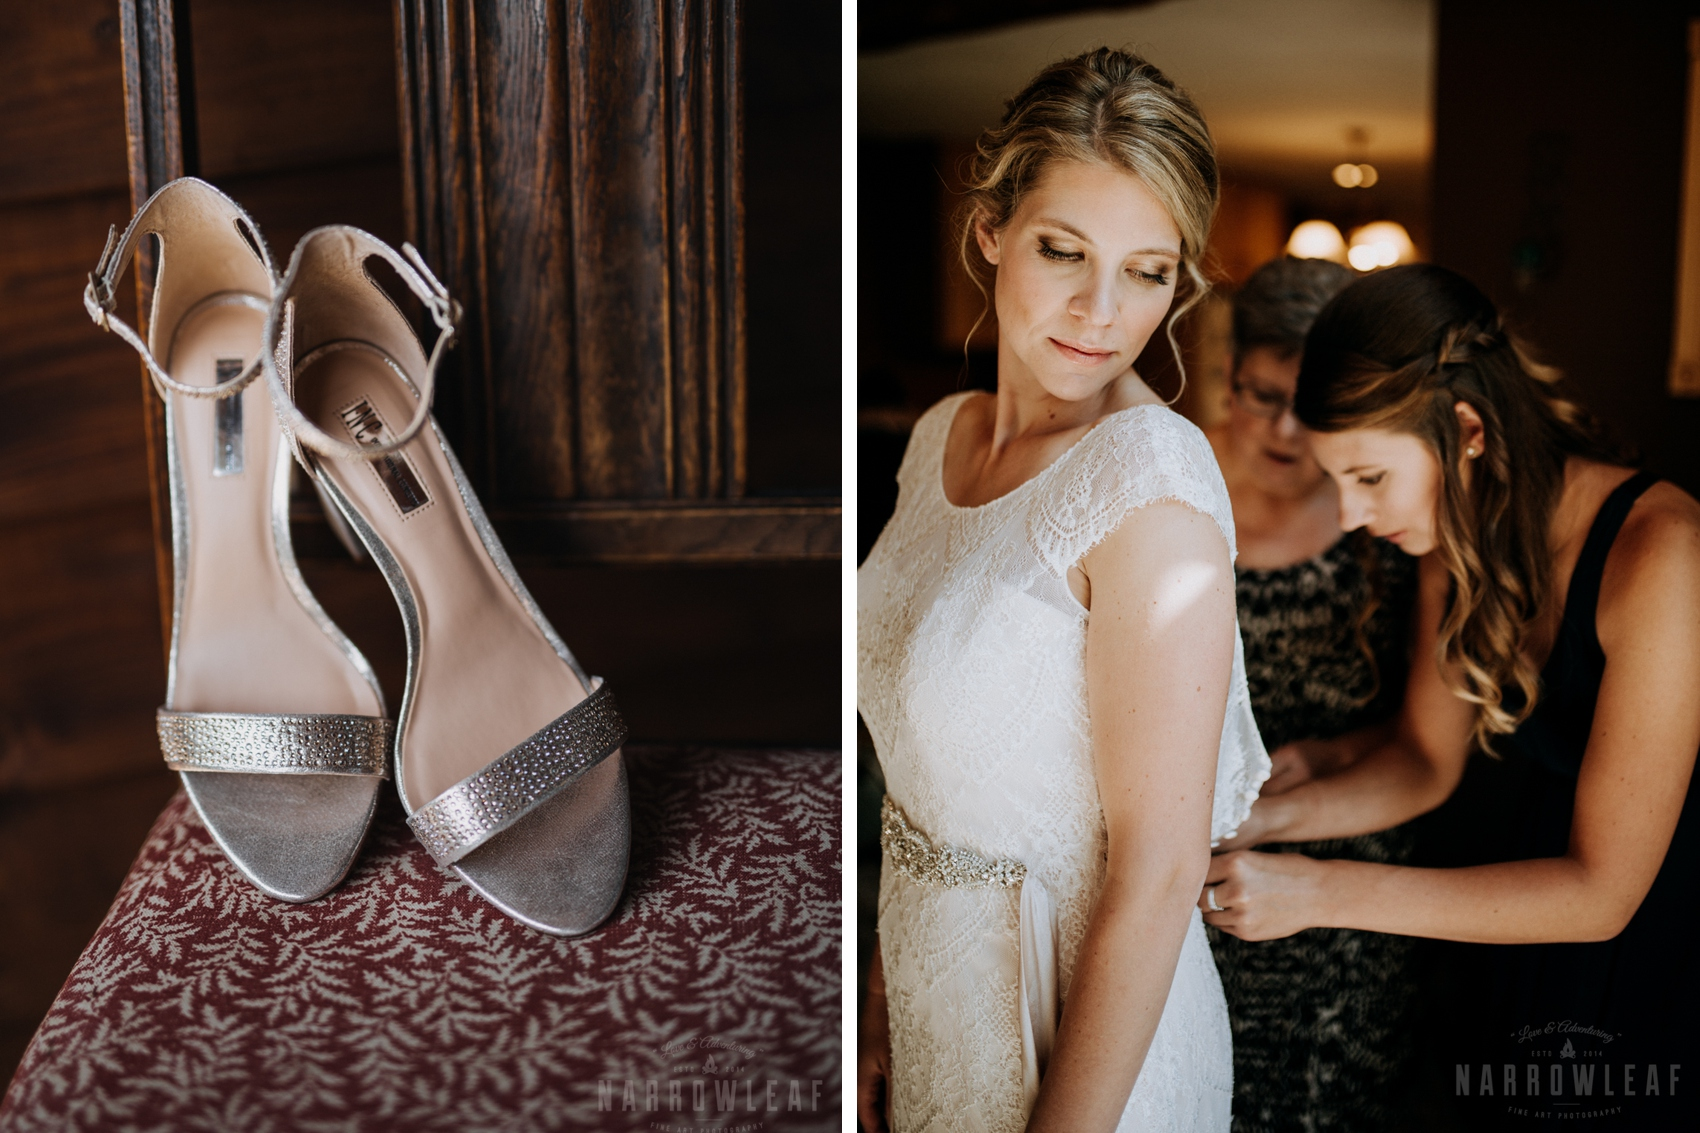 bride-ready-details-silver-shoes.jpg